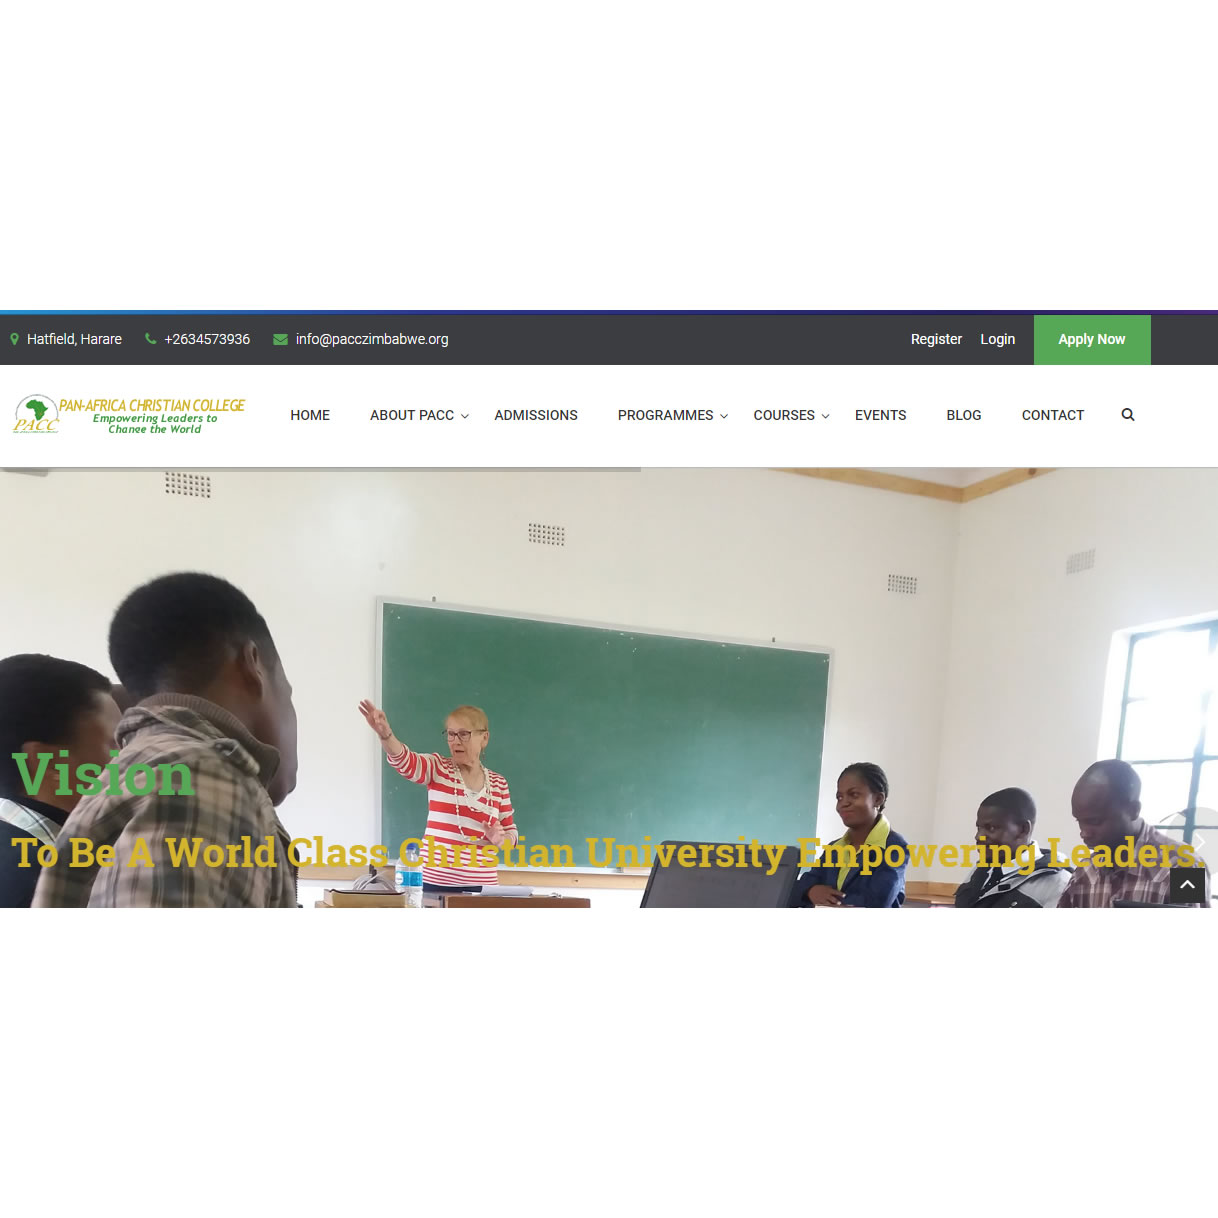 Website design for Pan Africa Christian College, Harare, Zimbabwe